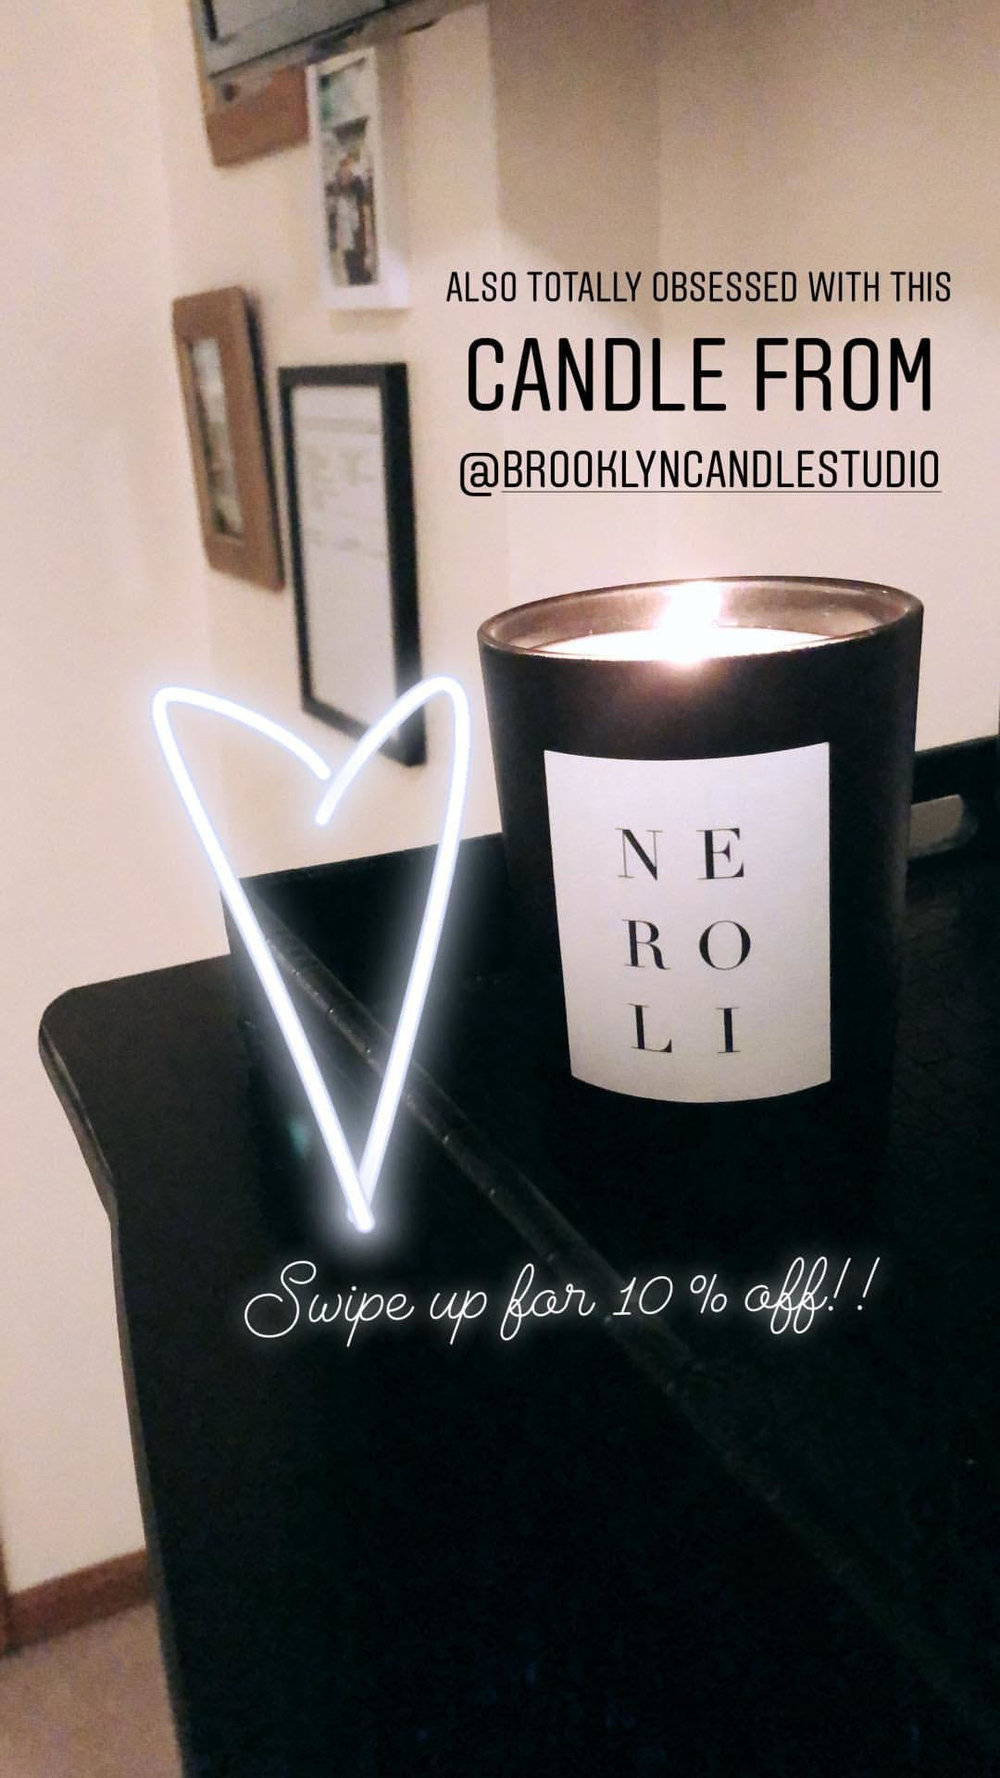 10 % off brooklyn candle studio ! click: HERE  -